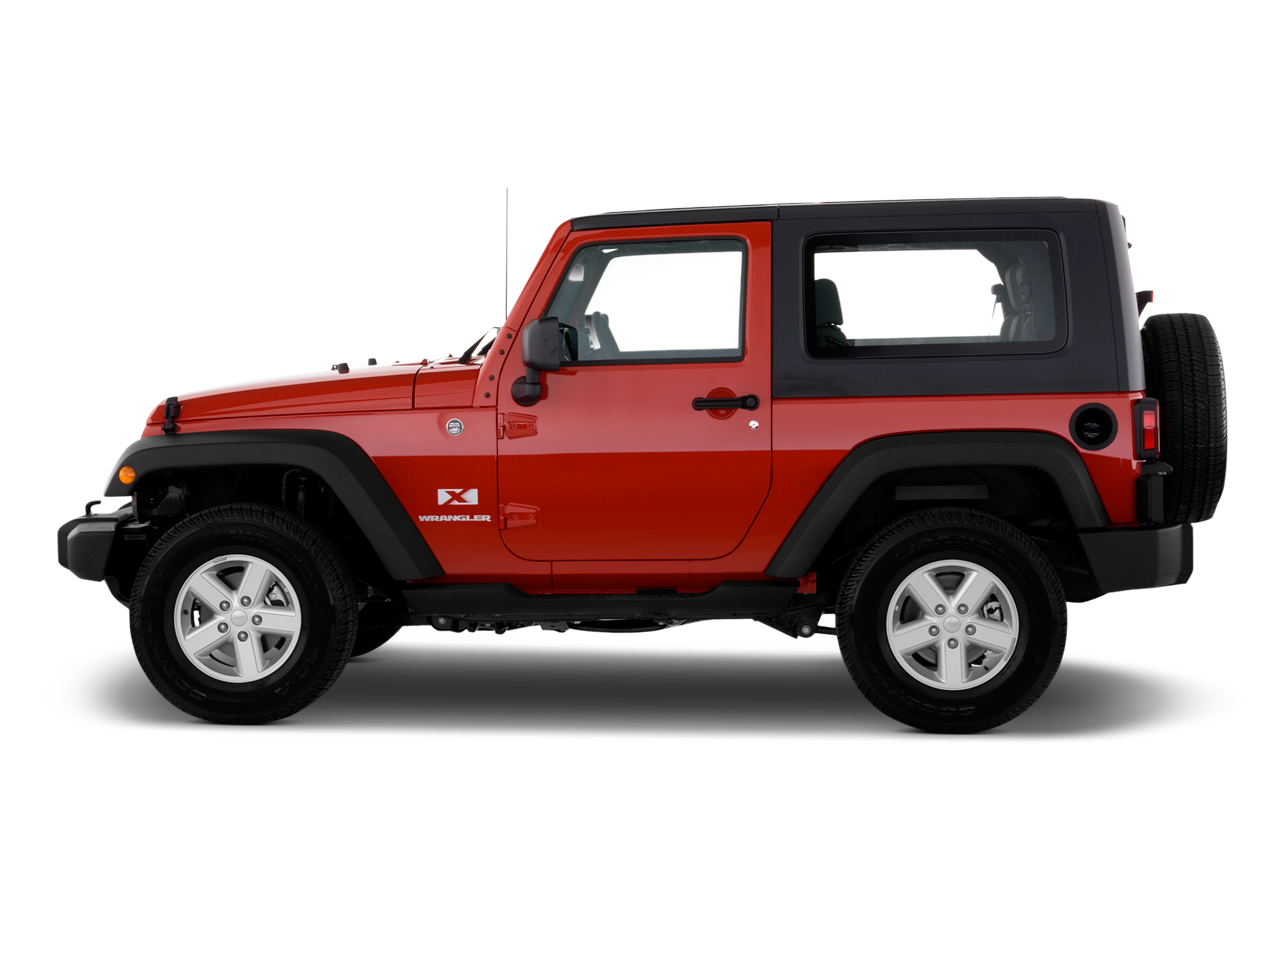 2007 Jeep Wrangler Unlimited Four Seasons Wrap Up